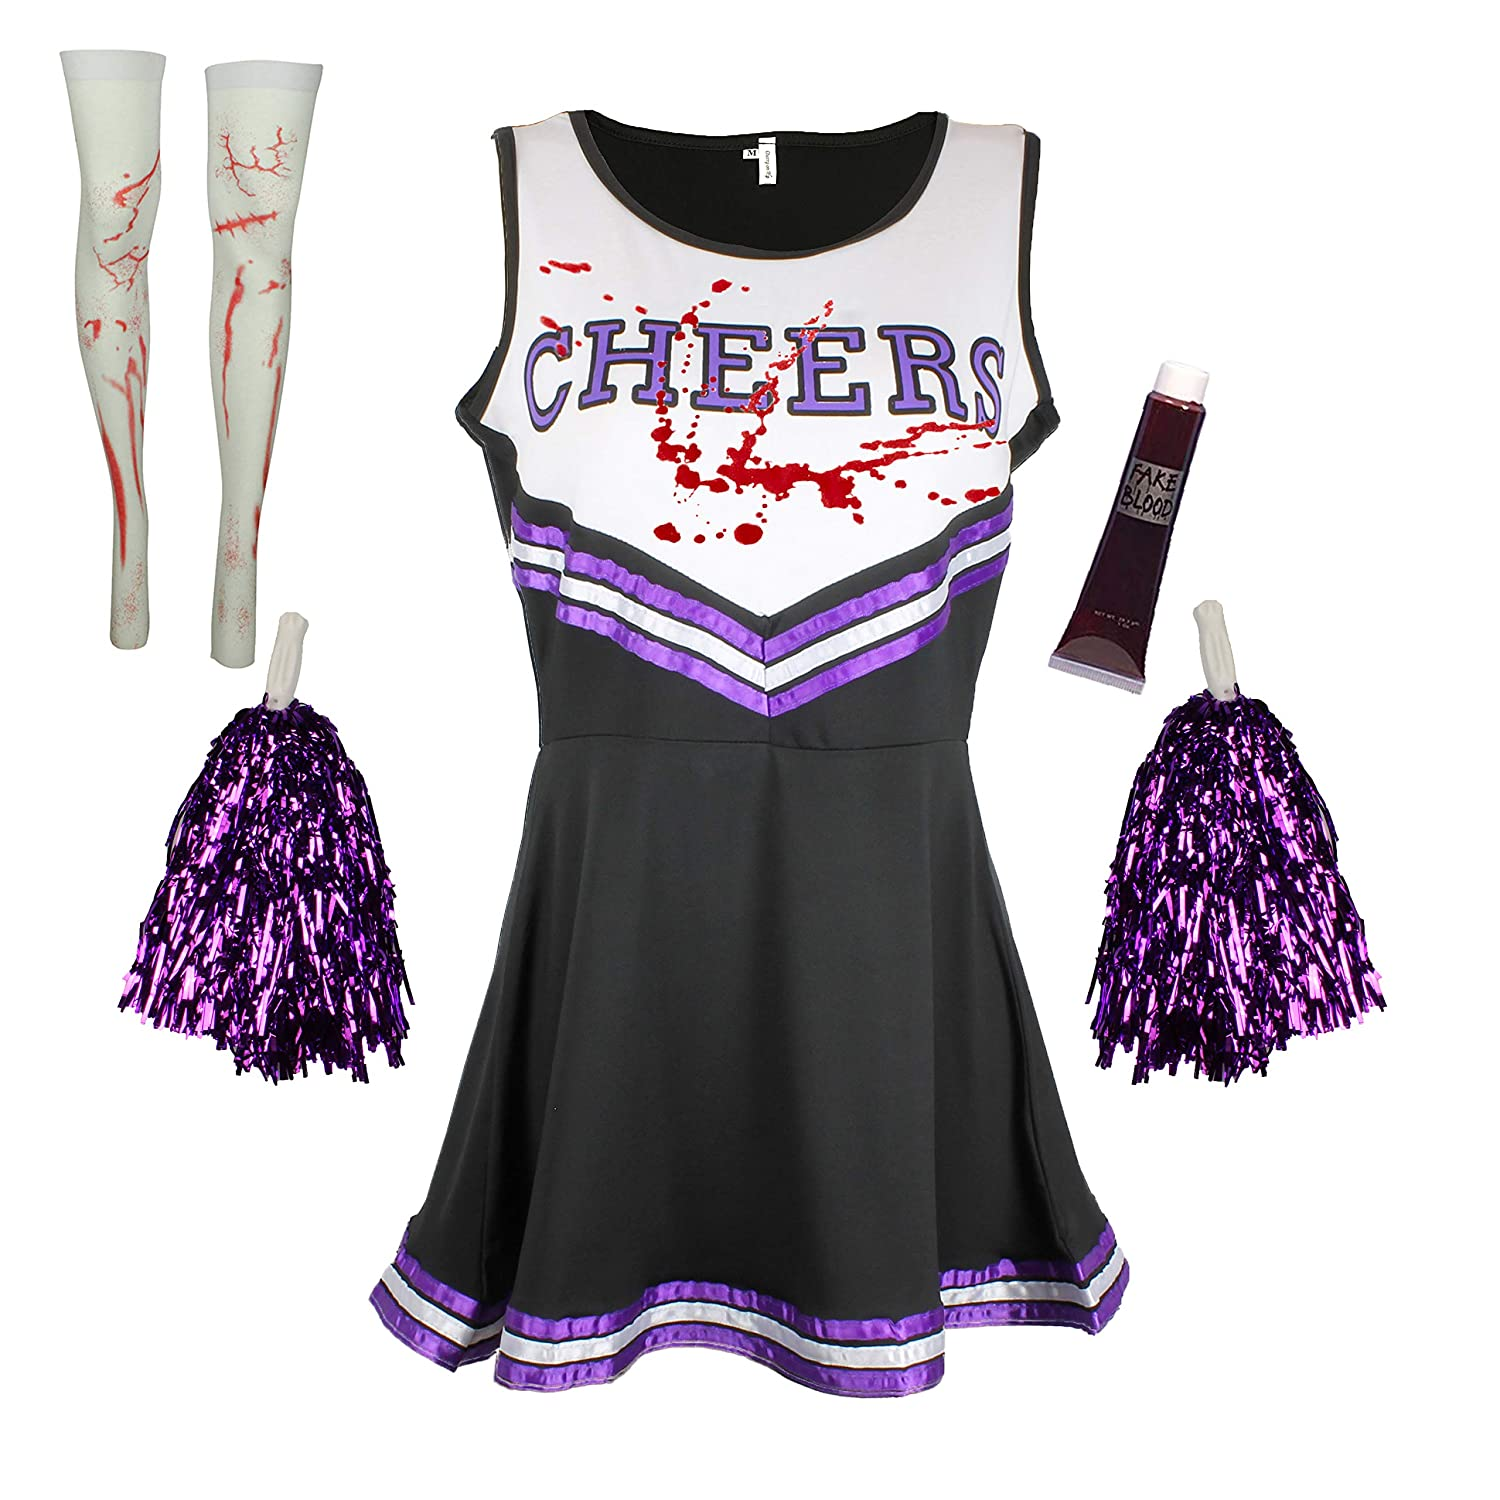 ZOMBIE CHEERLEADER FANCY DRESS OUTFIT COSTUME WITH A BLOOD AND STOCKINGS